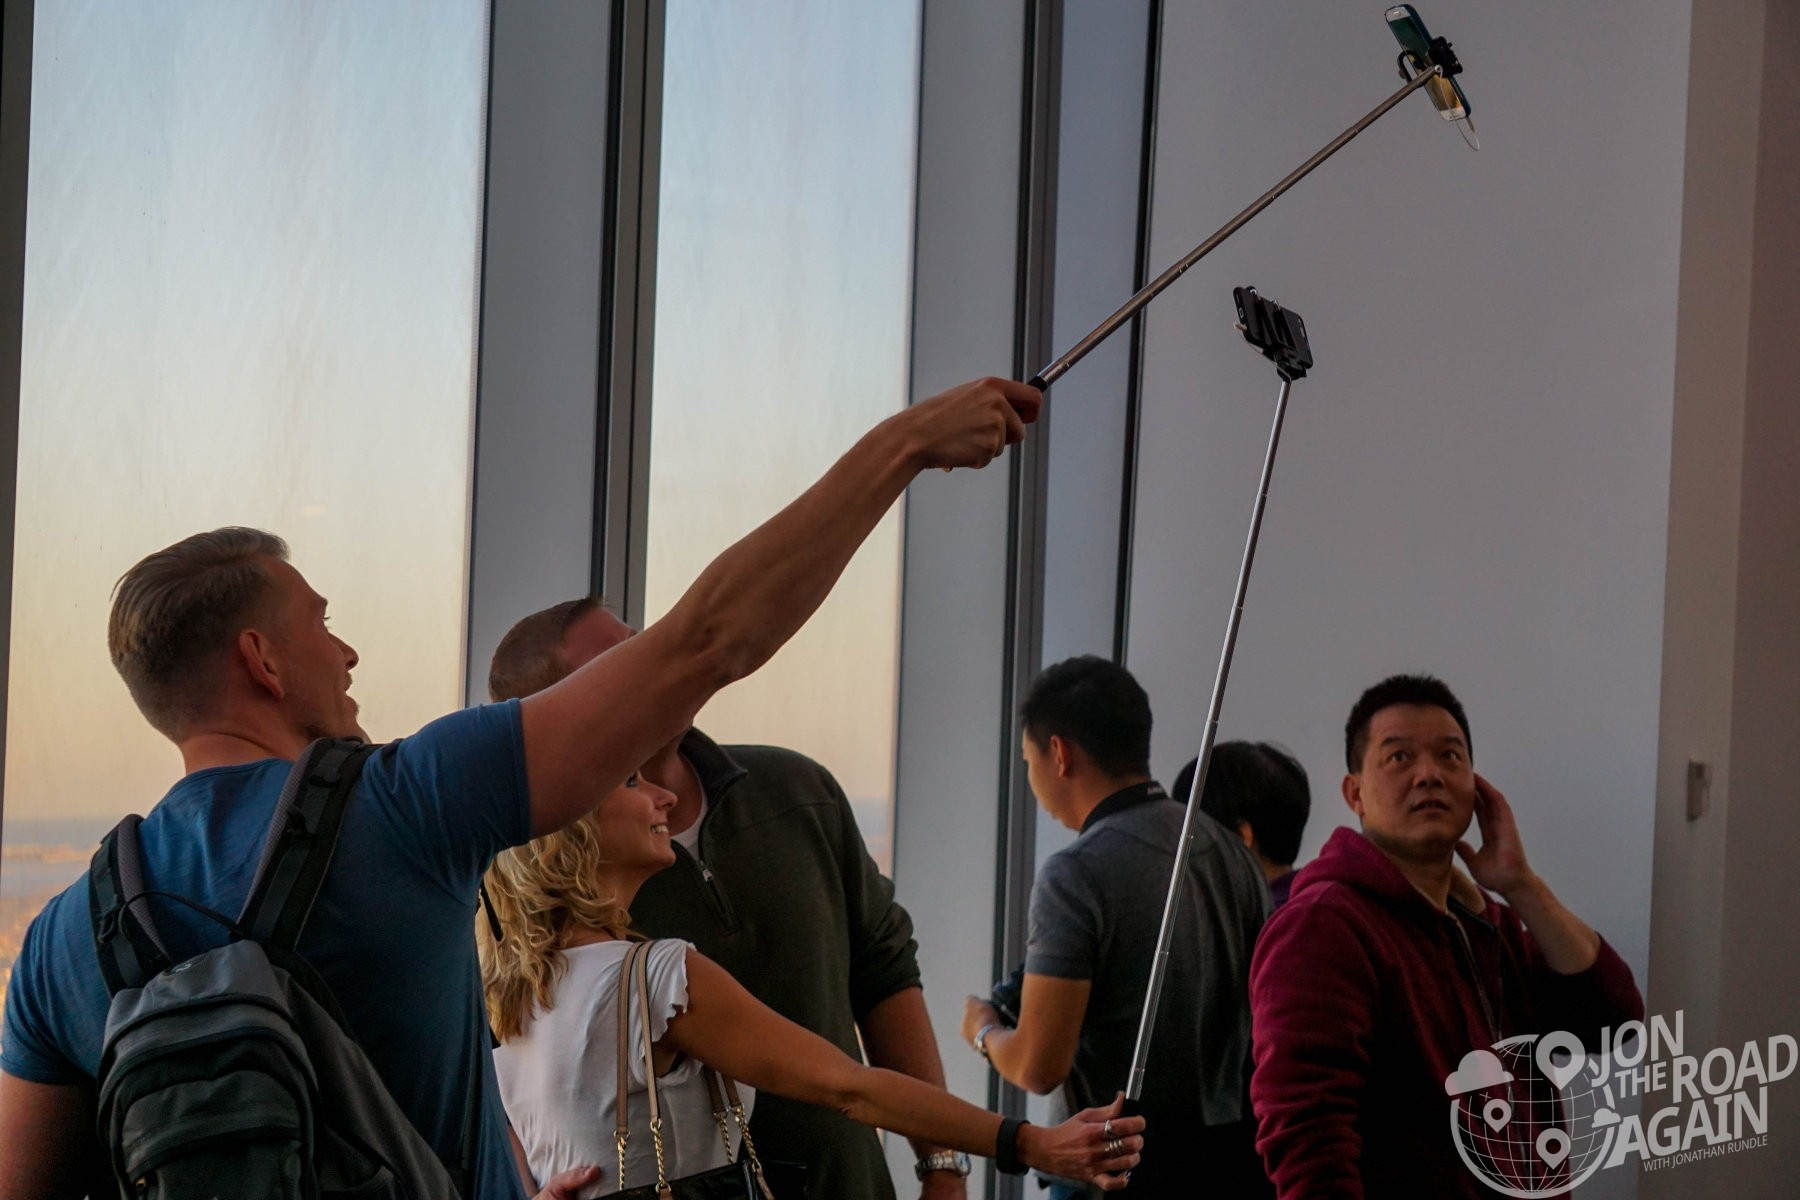 Selfie Sticks at One World Observatory